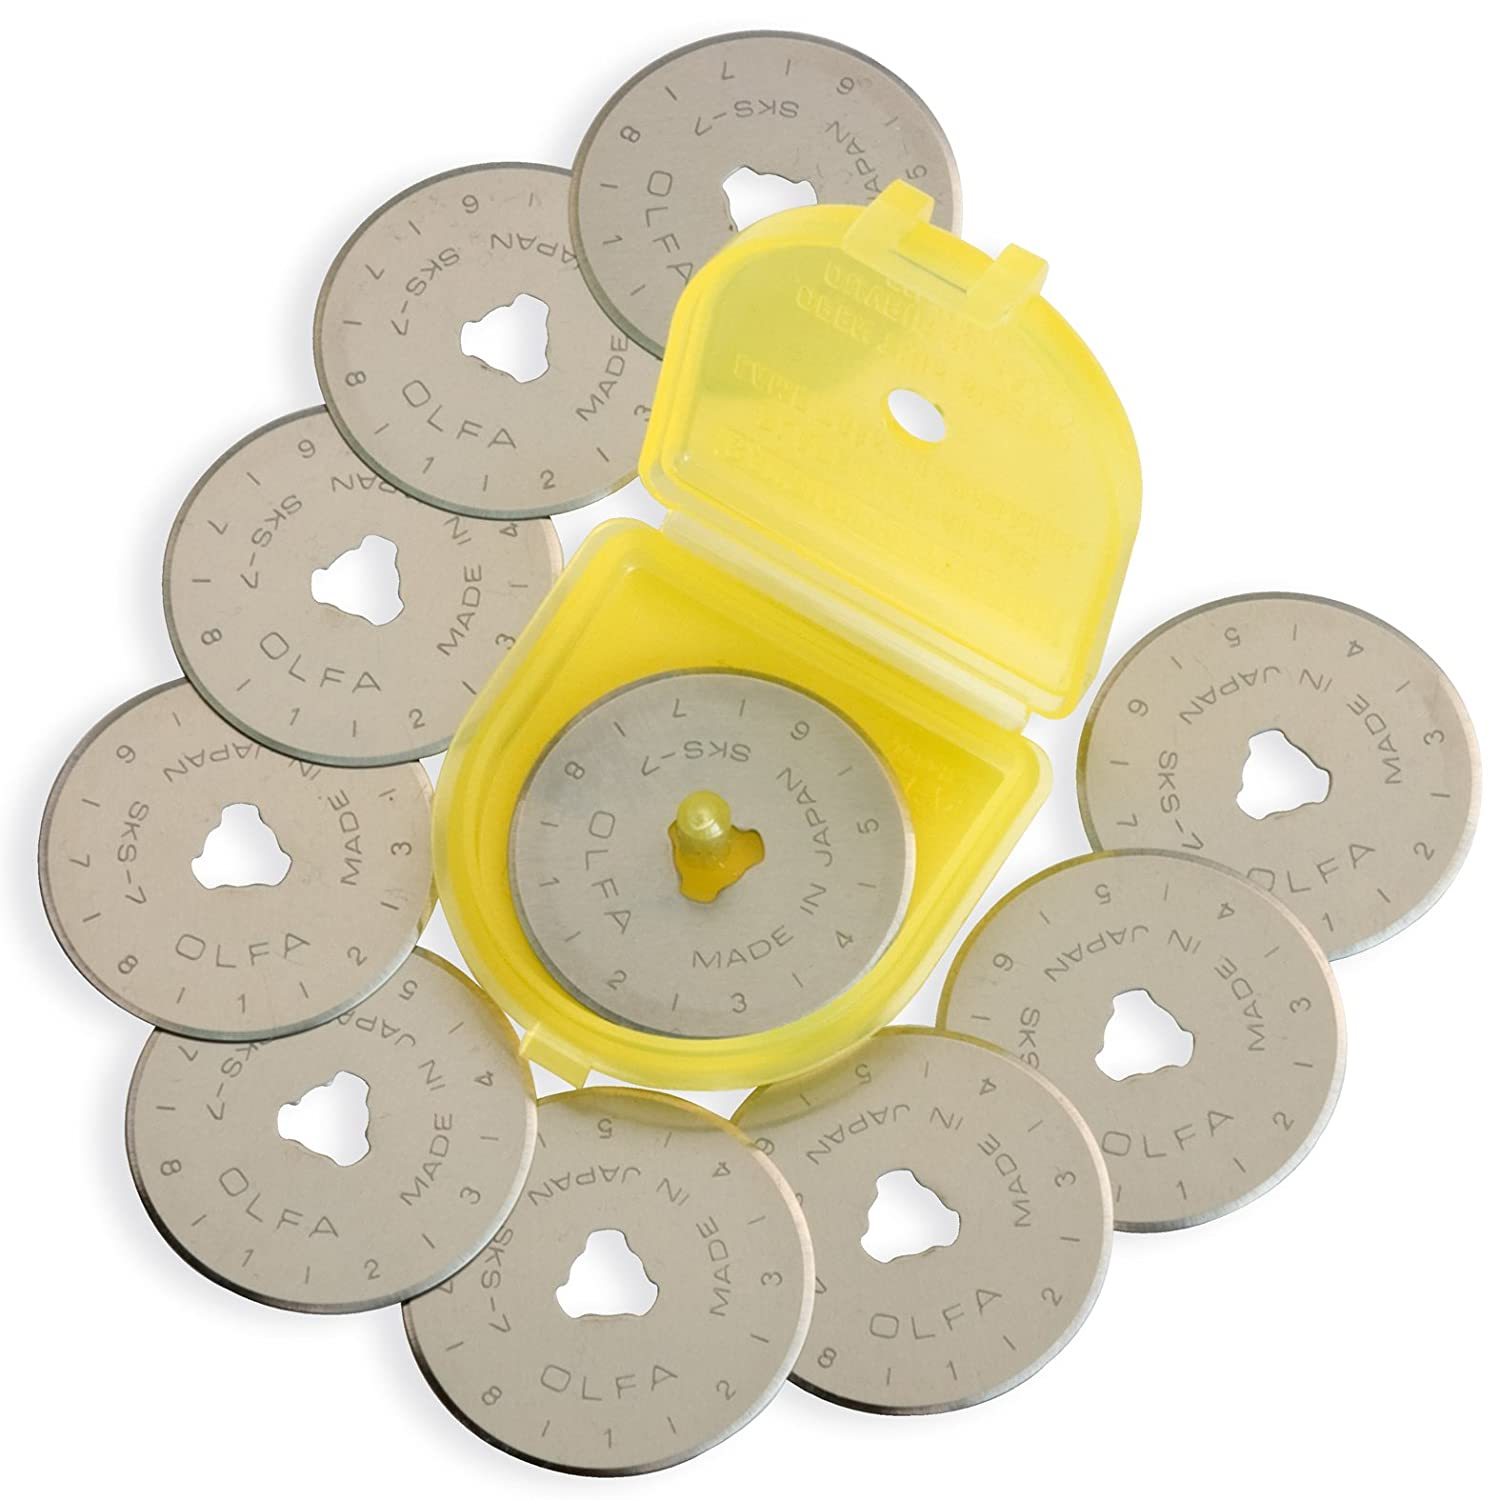 Olfa 28mm Rotary Blade Refill- 10 per Package RB28-10